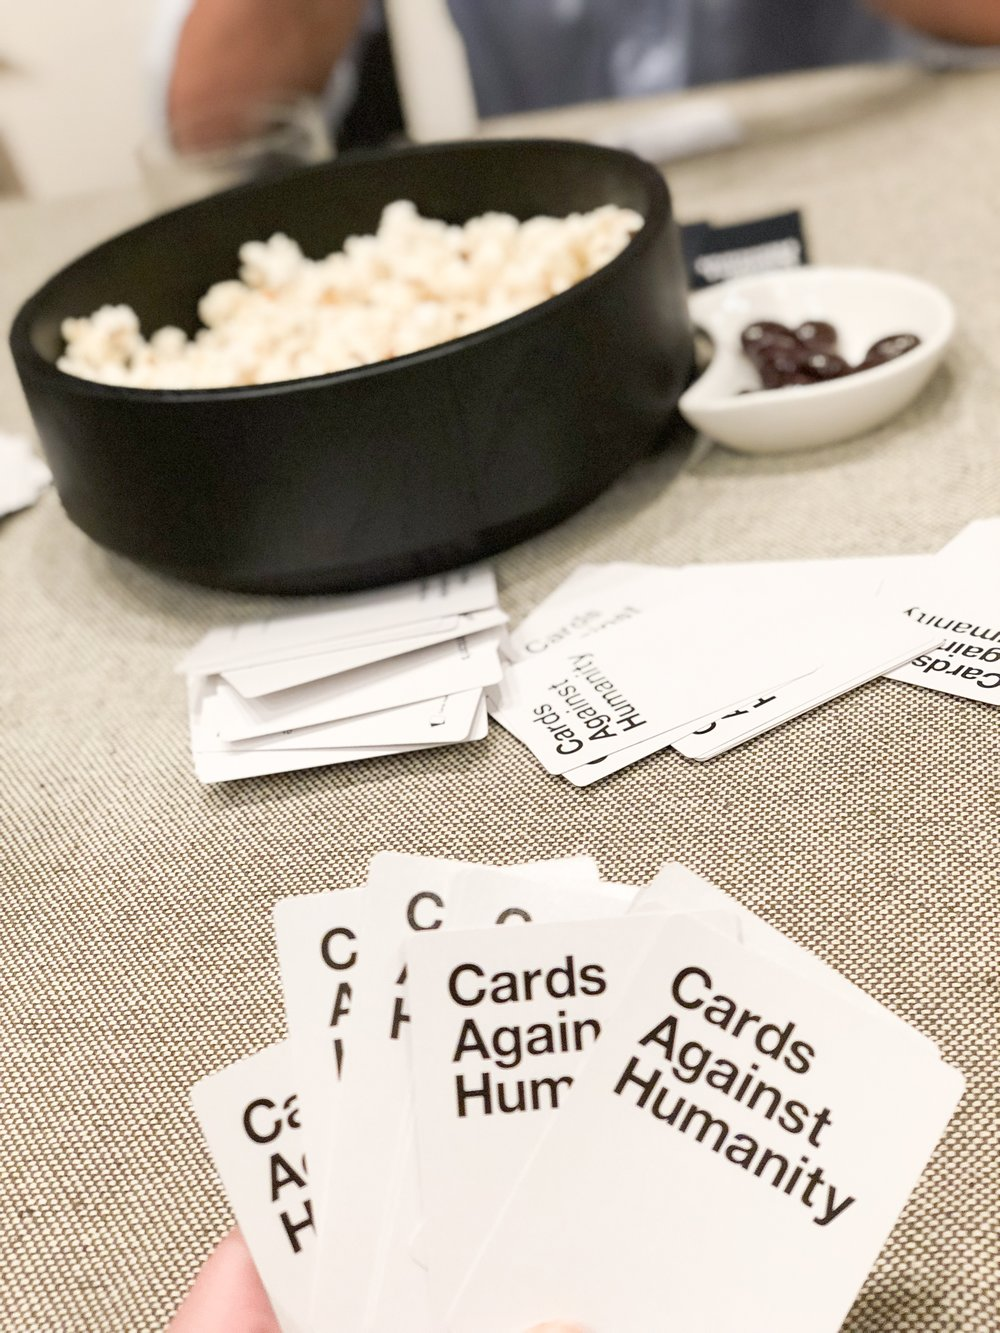 Our go to games lately have been Cards Against Humanity and Shifty Eye'd Spies. Thanks for reading, we hope you feel inspired to host your own game night!